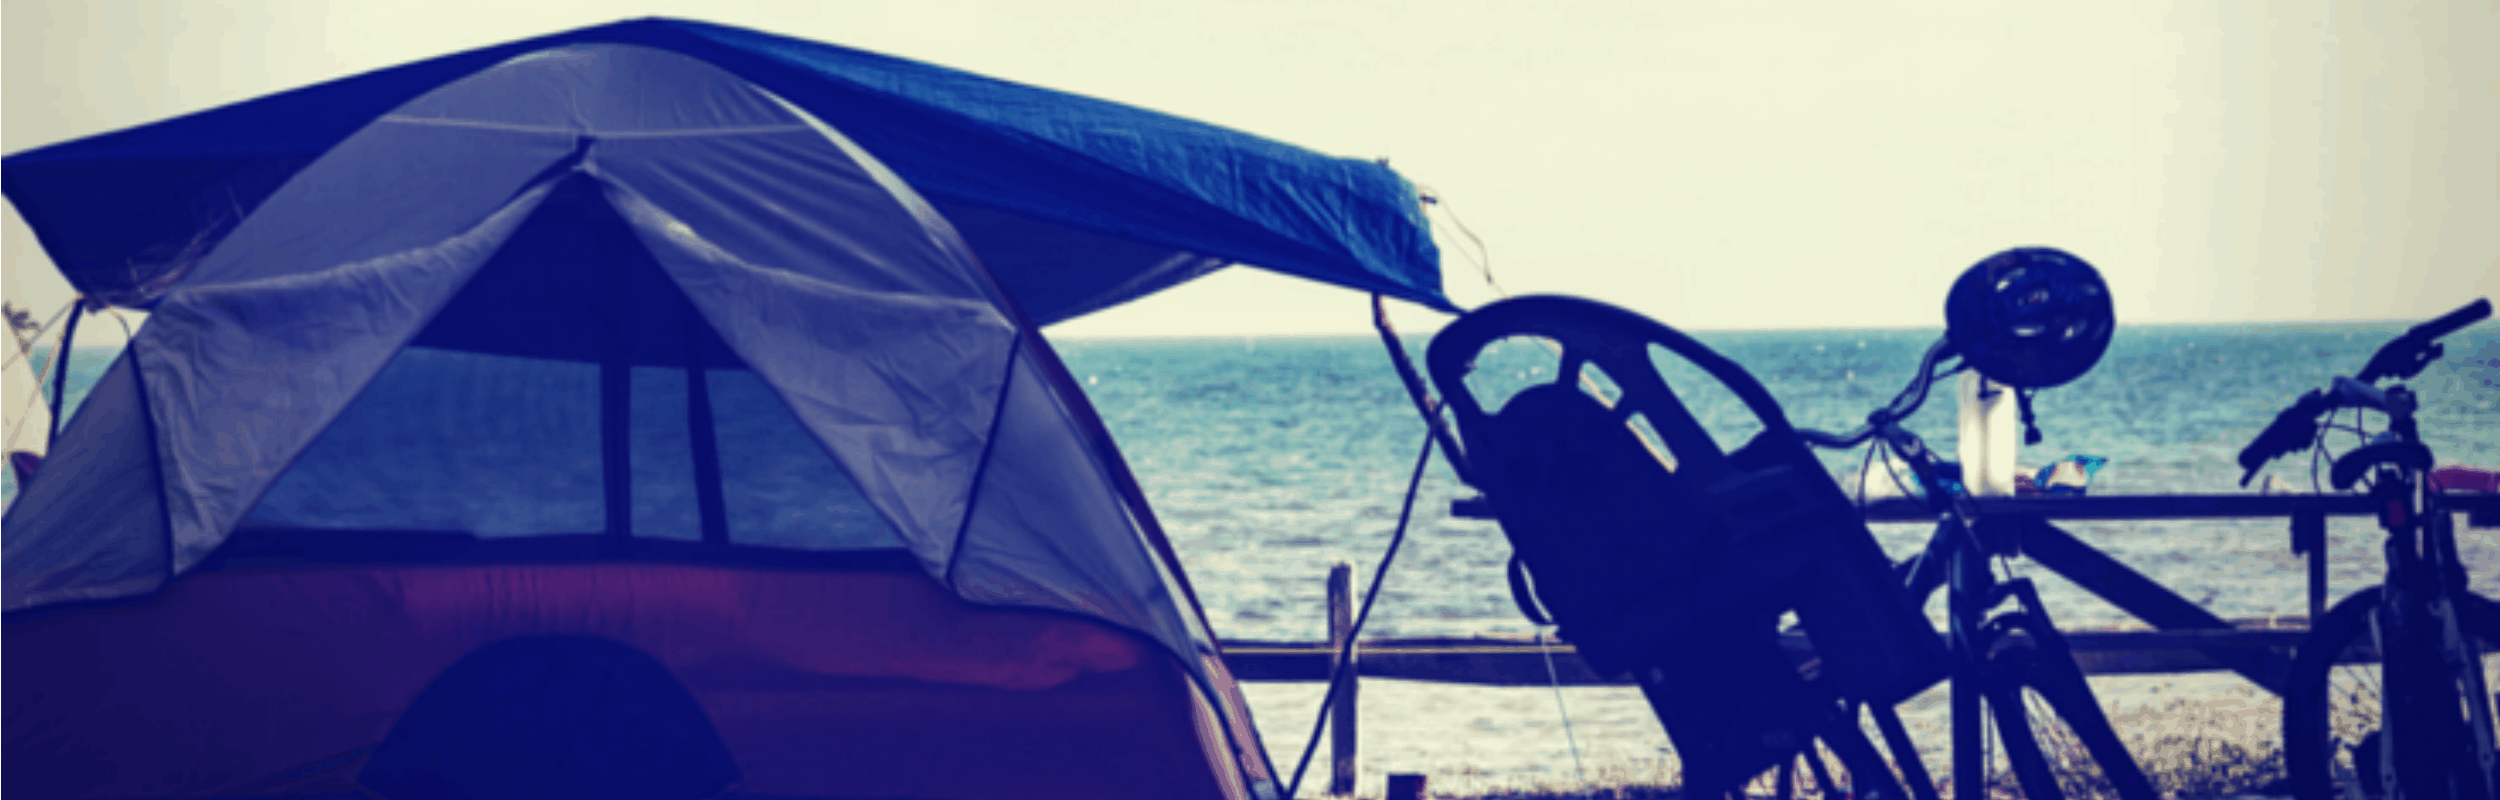 What To Do When It Rains on Your Camp Out